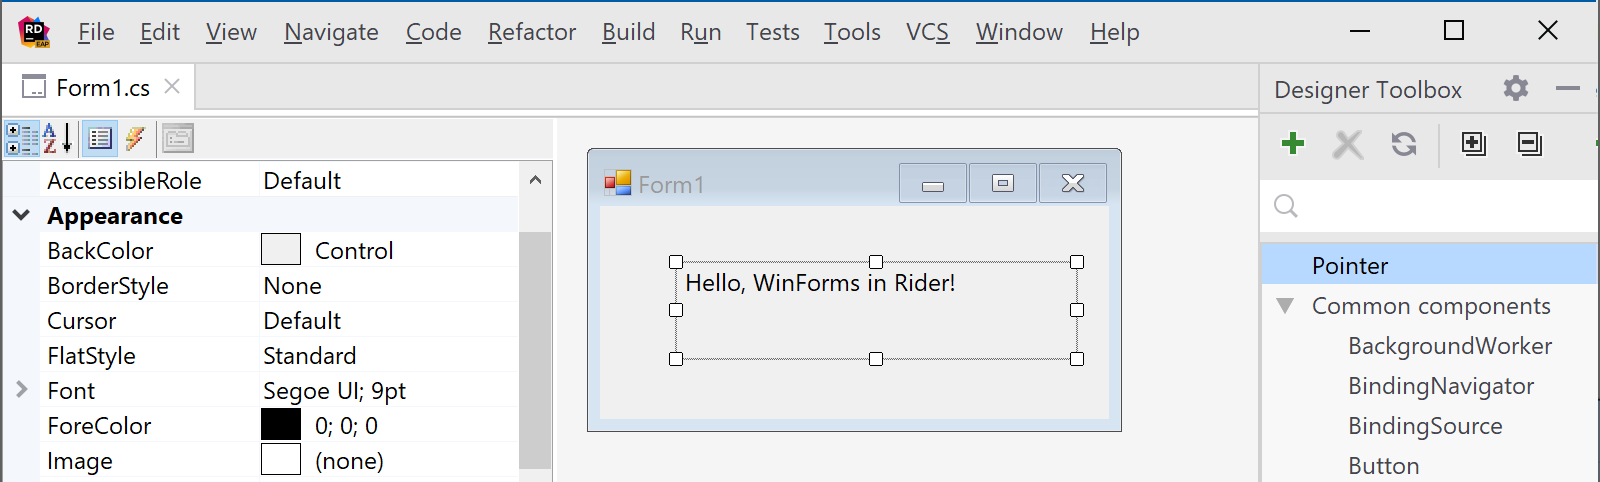 WinForms designer in Rider 2019.1